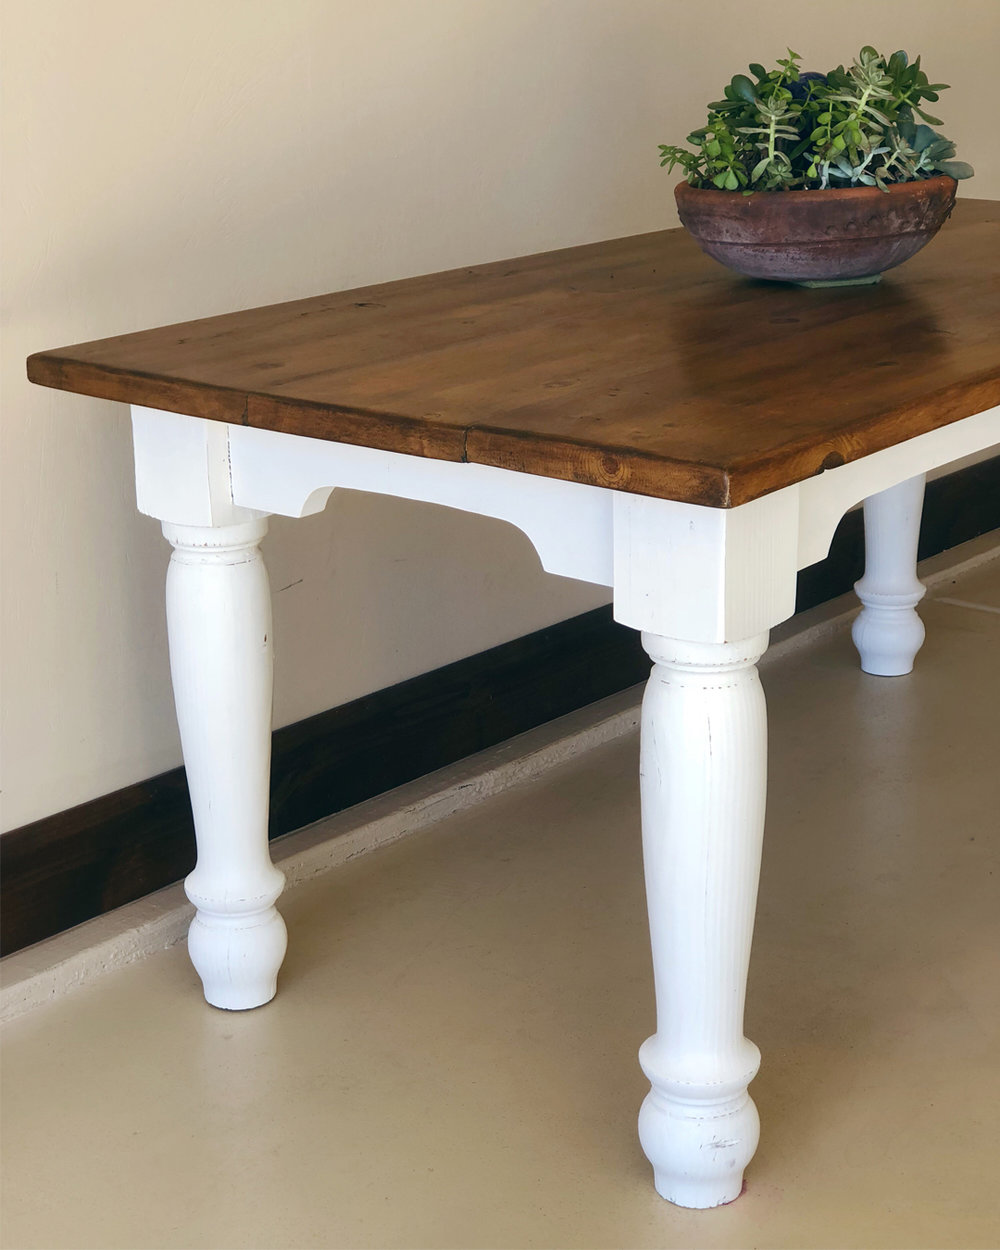 DIY, furniture makeover, farmtable makeover, farmtable DIY, DIY blogger inspo, furniture makeover inspiration, home makeover inspriation, DIY inspo, chalk paint, finishing wax